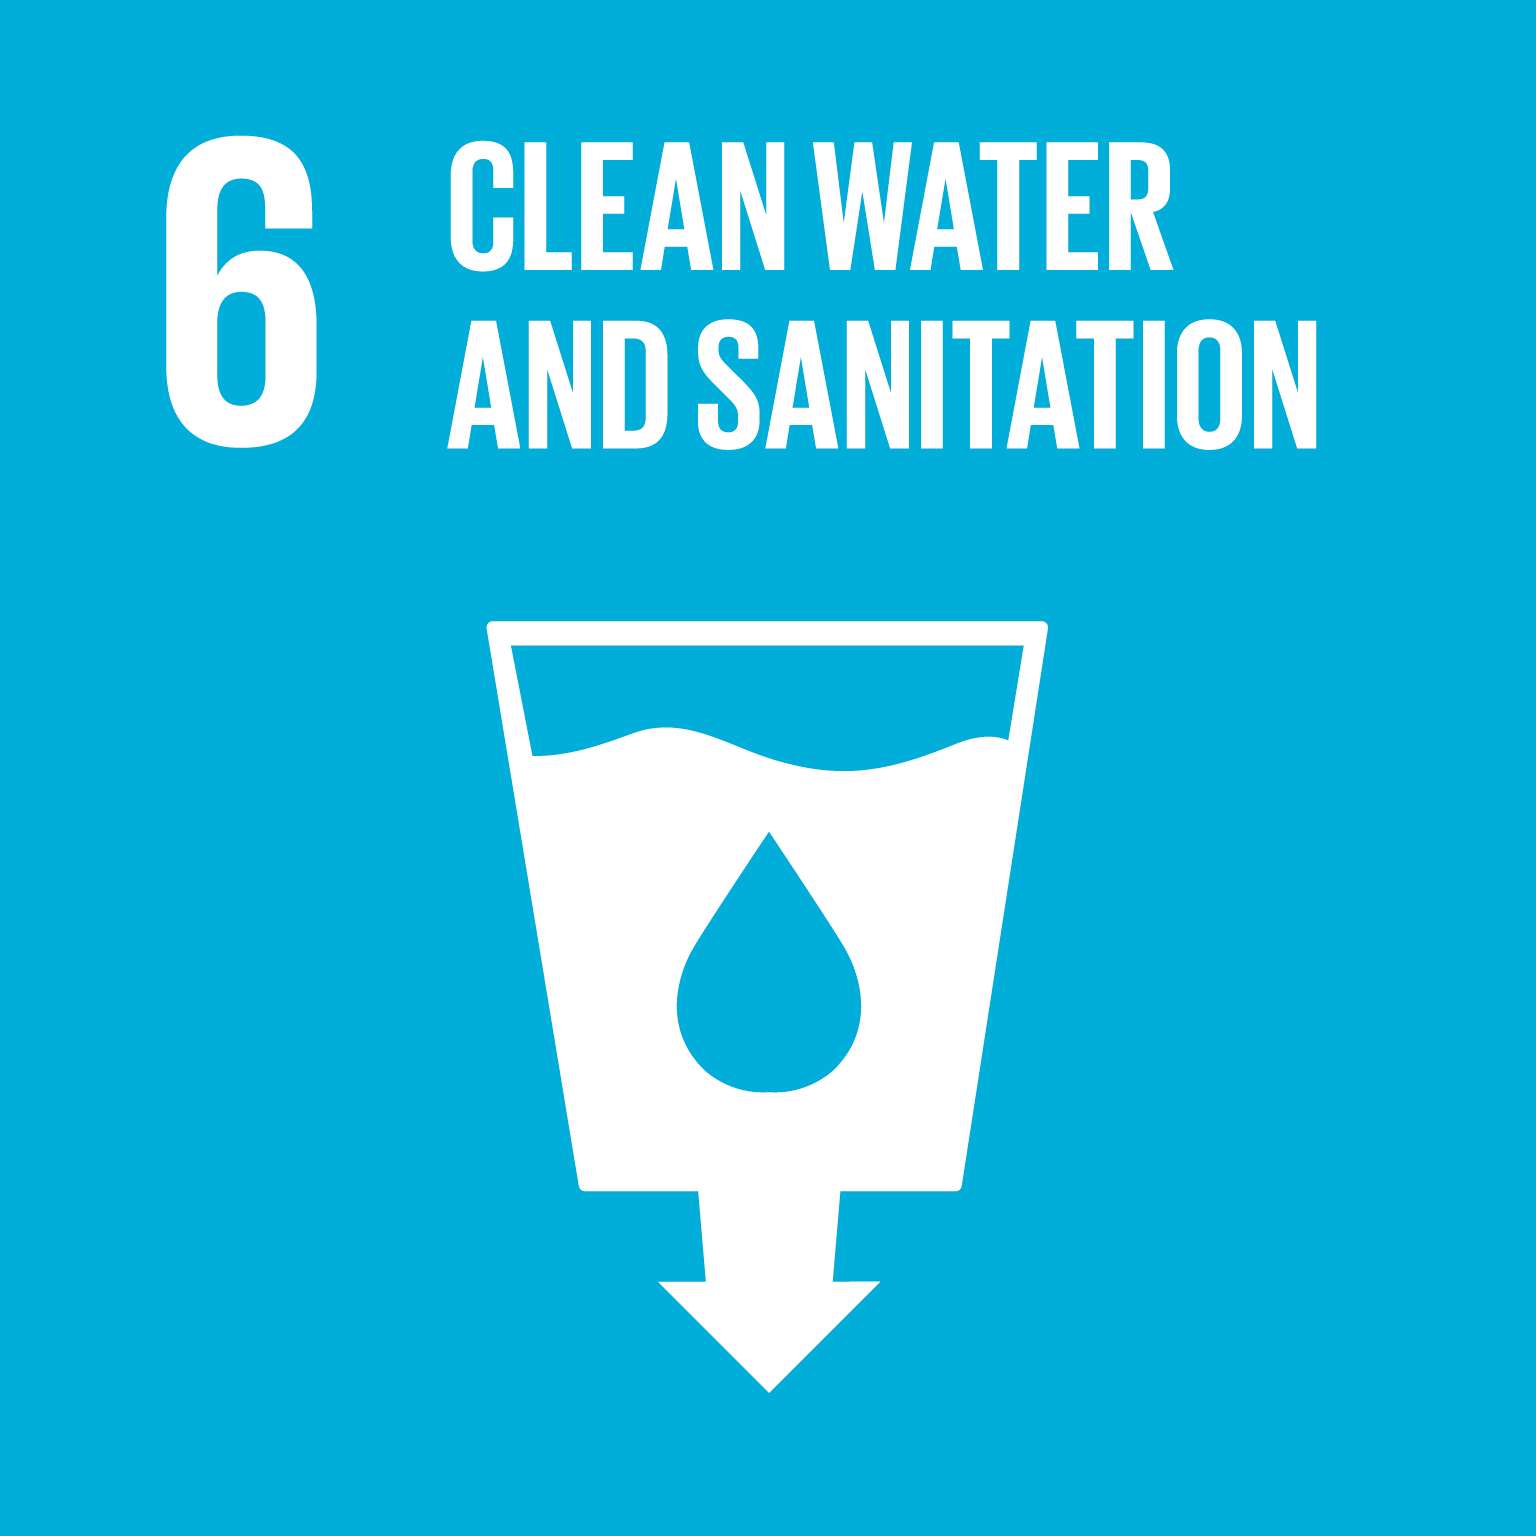 Goal 6: Ensure access to water and sanitation for all